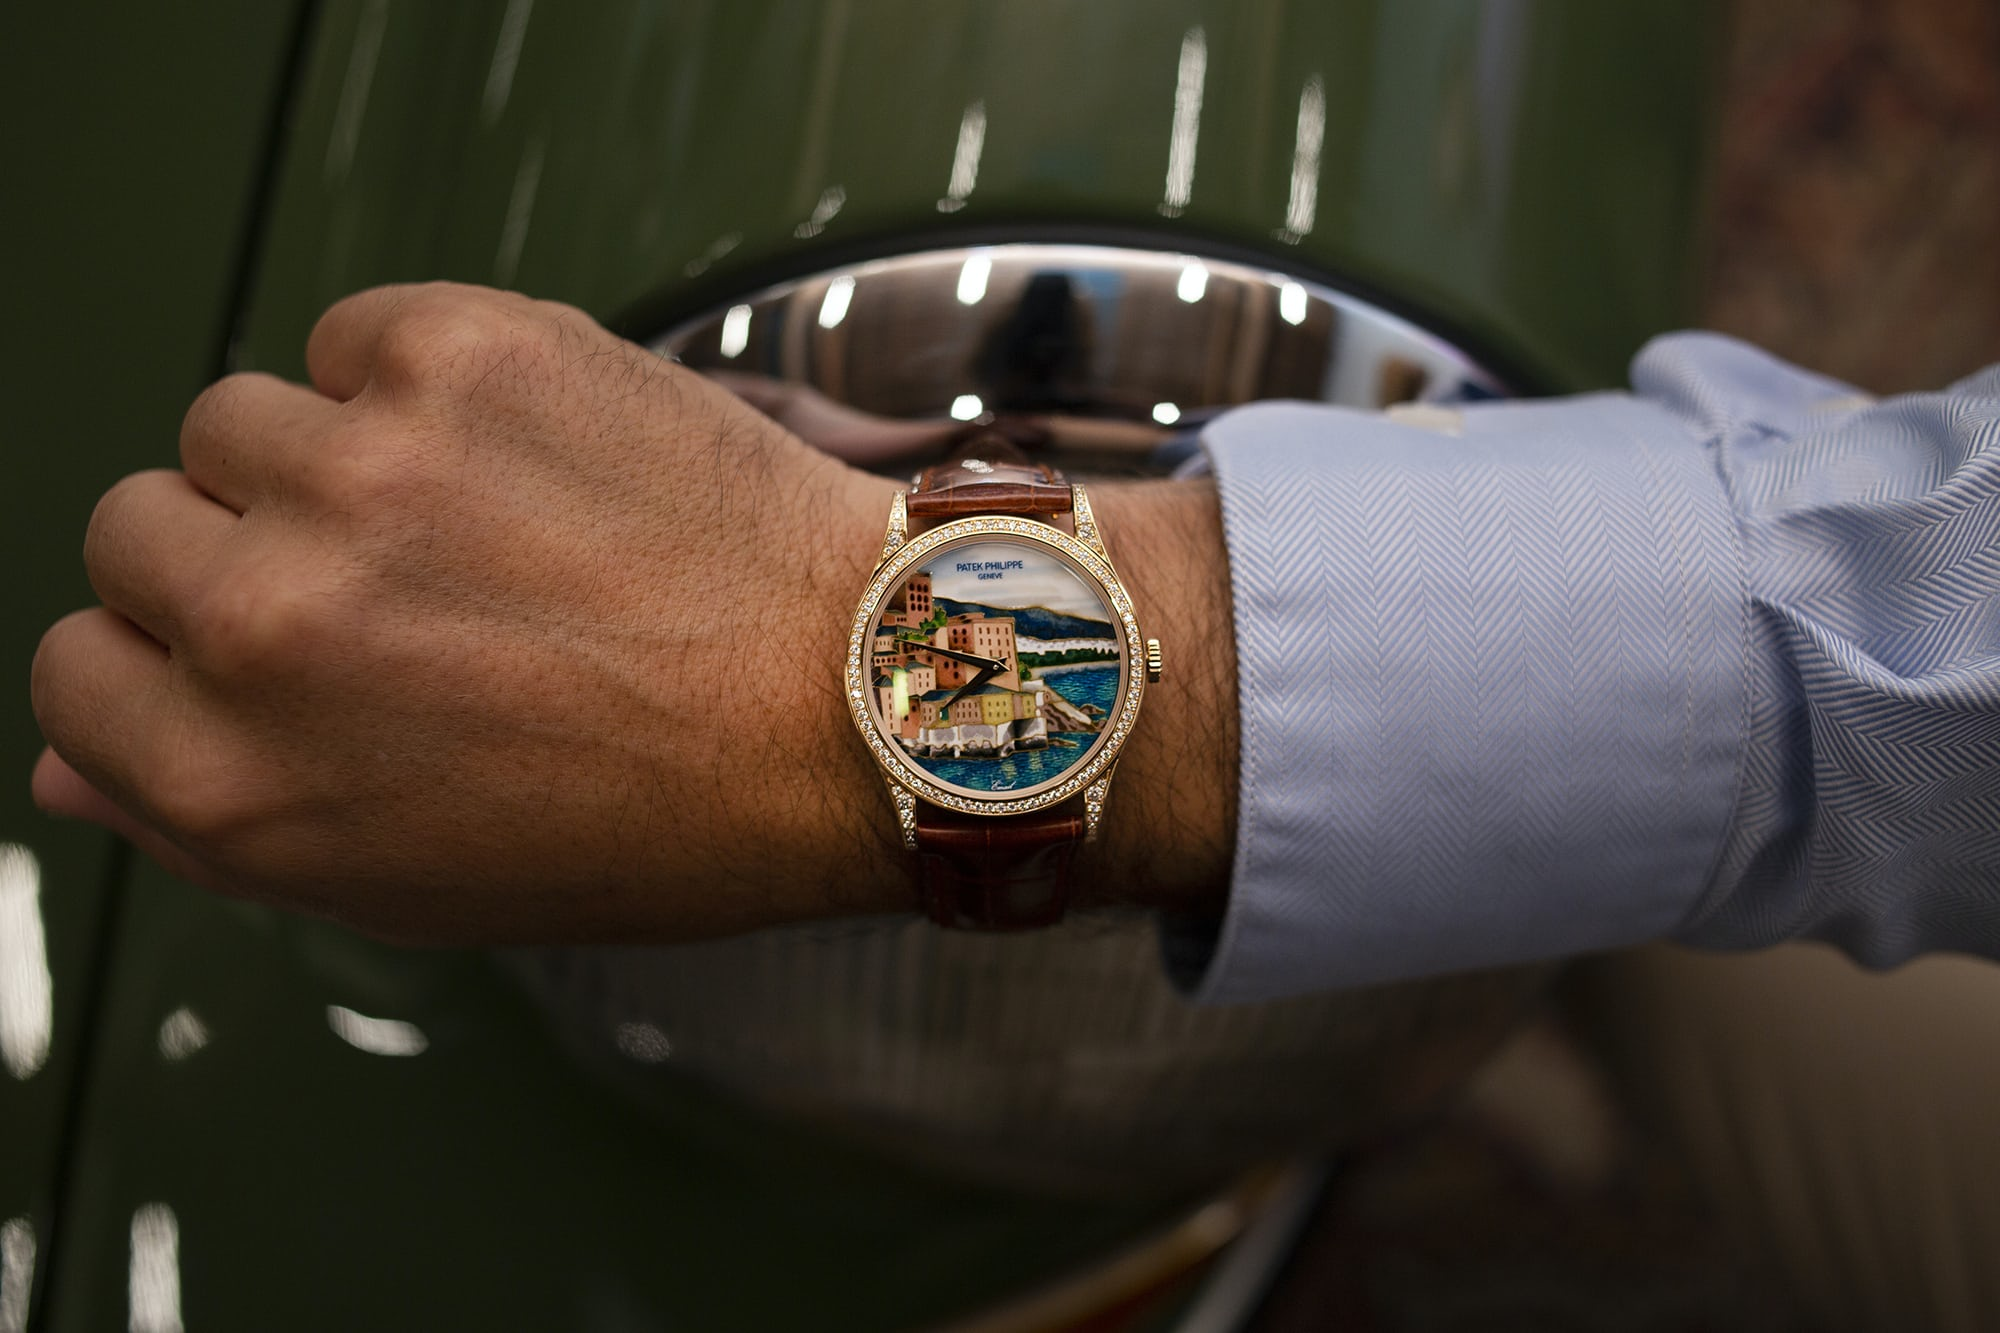 Photo Report: The Watches And Cars Of The HODINKEE Pop-Up At The UTA Artist Space In Los Angeles  3H0A0505 copy